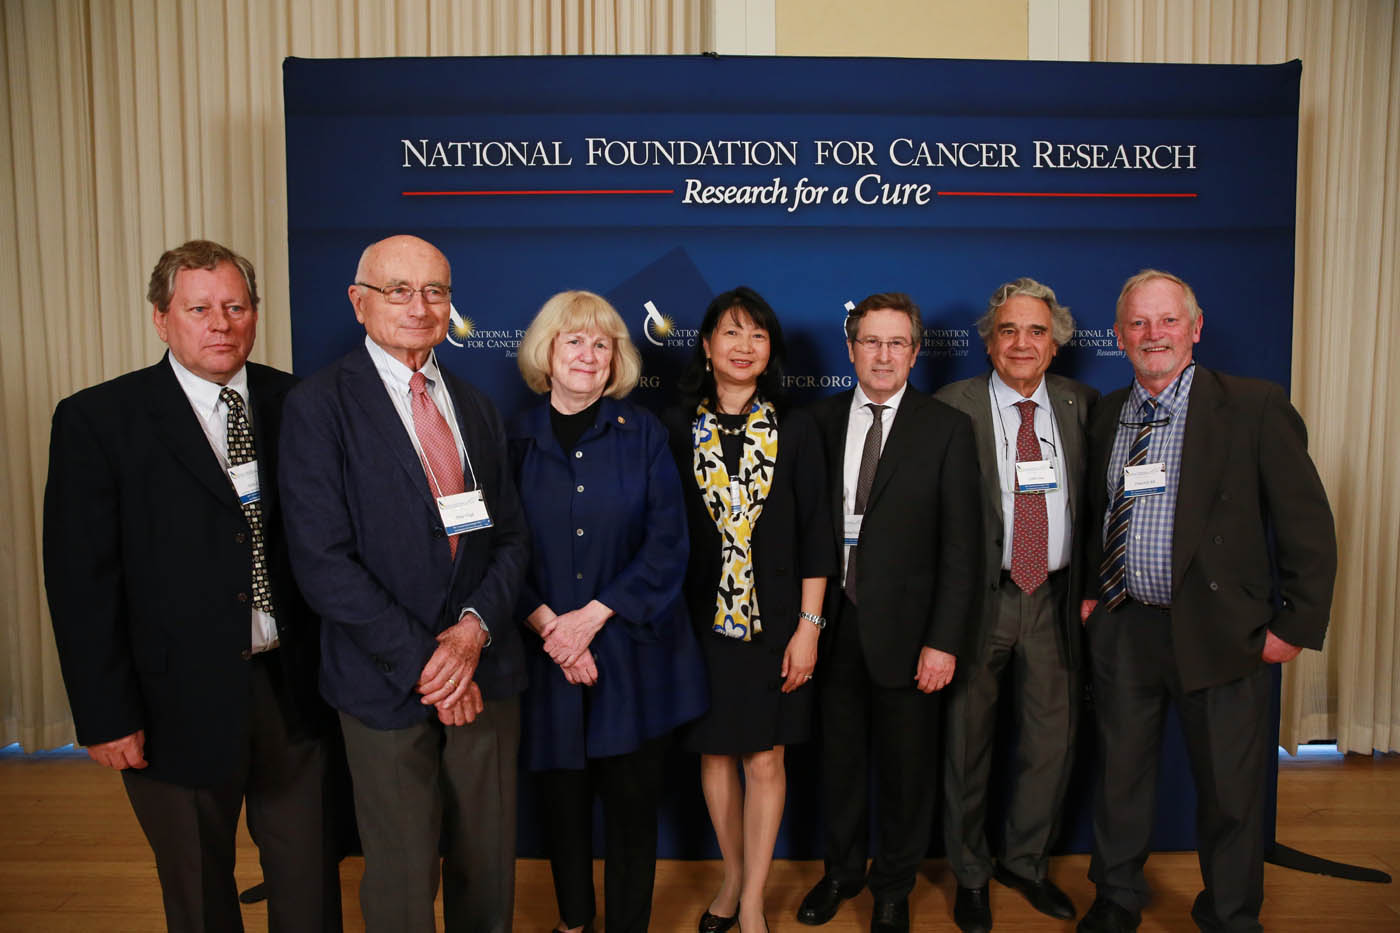 Past Szent-Gyorgyi Prize winners winners with NFCR President and Co chair Szent-Györgyi Prize Selection Committee, Dr. Sujuan Ba